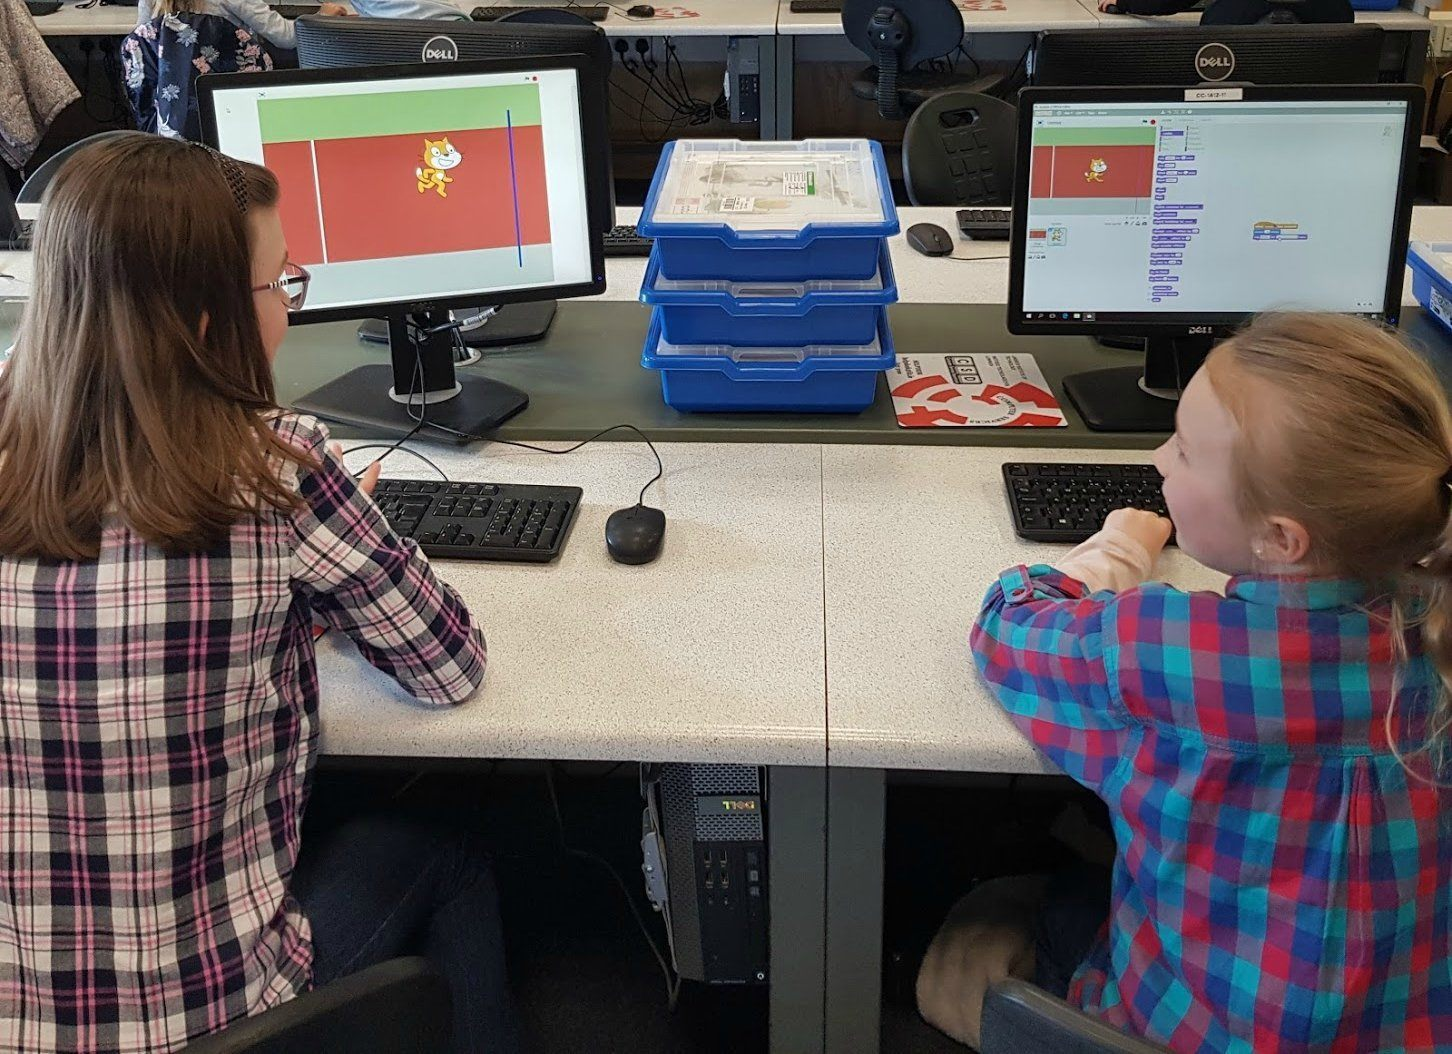 CoderDojo Camp